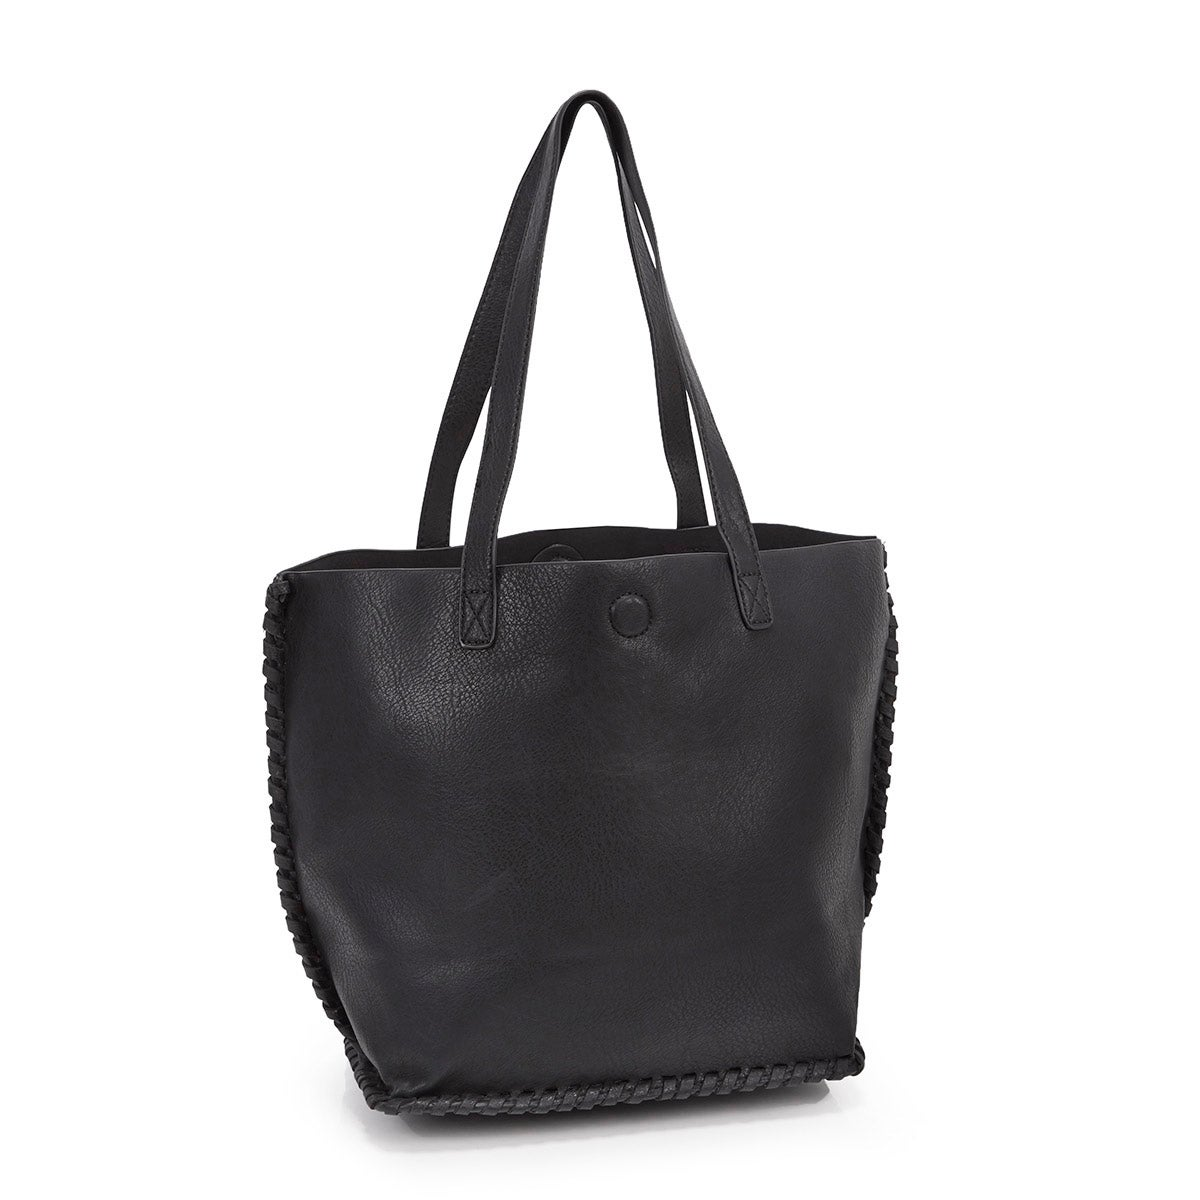 Lds black stitched tote bag